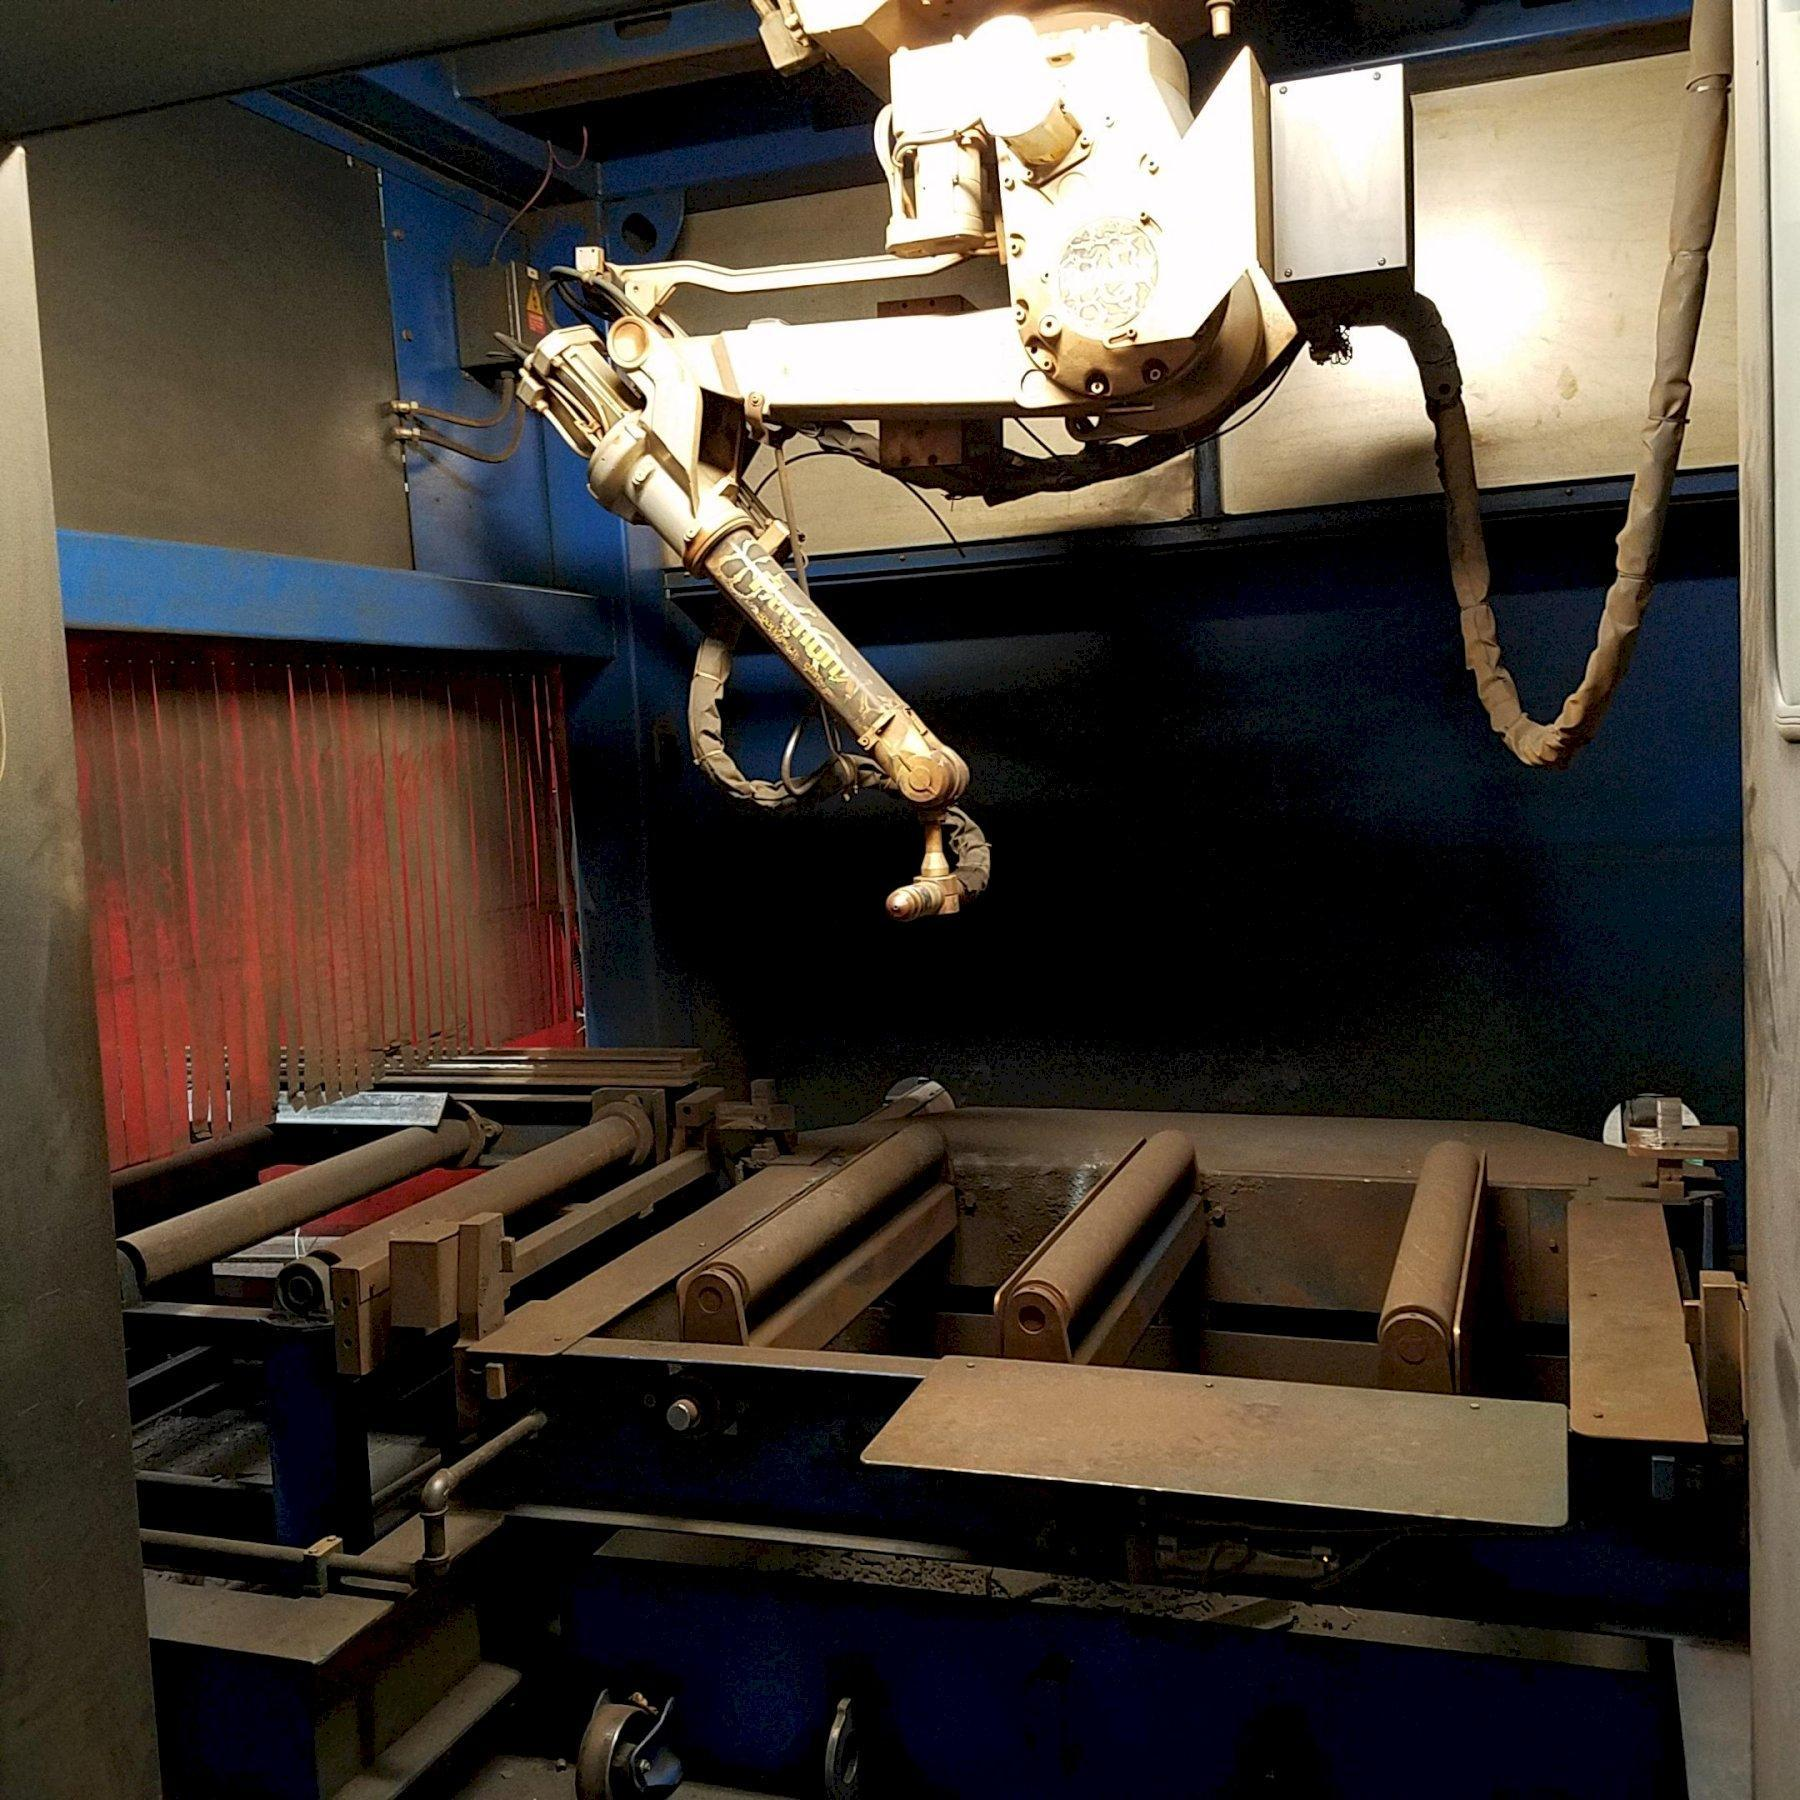 USED BURLINGTON AUTOMATION MODEL PYTHON X STRUCTURAL STEEL FABRICATING SYSTEM, Stock # 10754, Year 2013